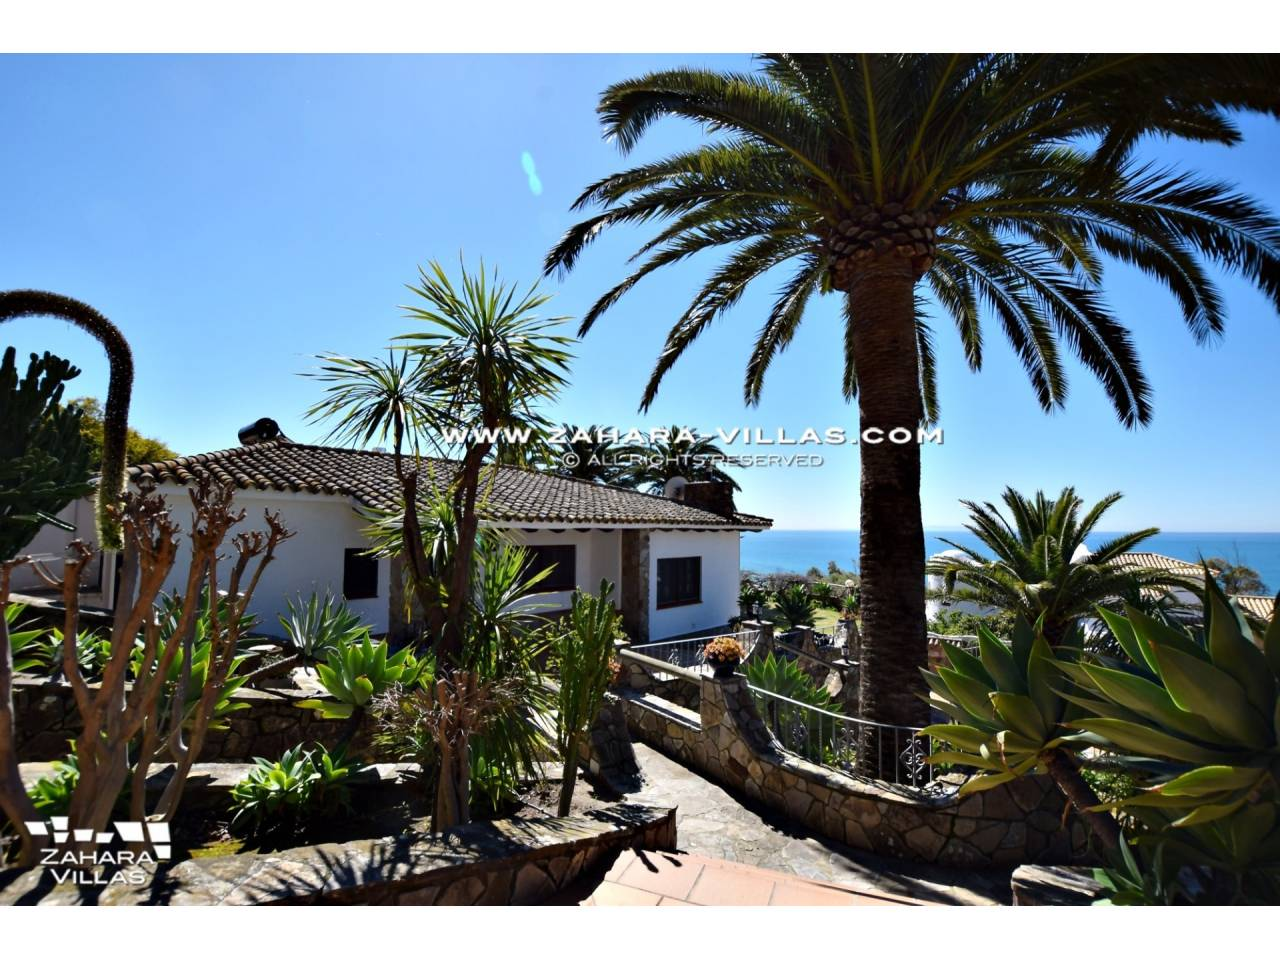 Imagen 2 de Wonderful villa for sale in the upper area of the Atlanterra mountain